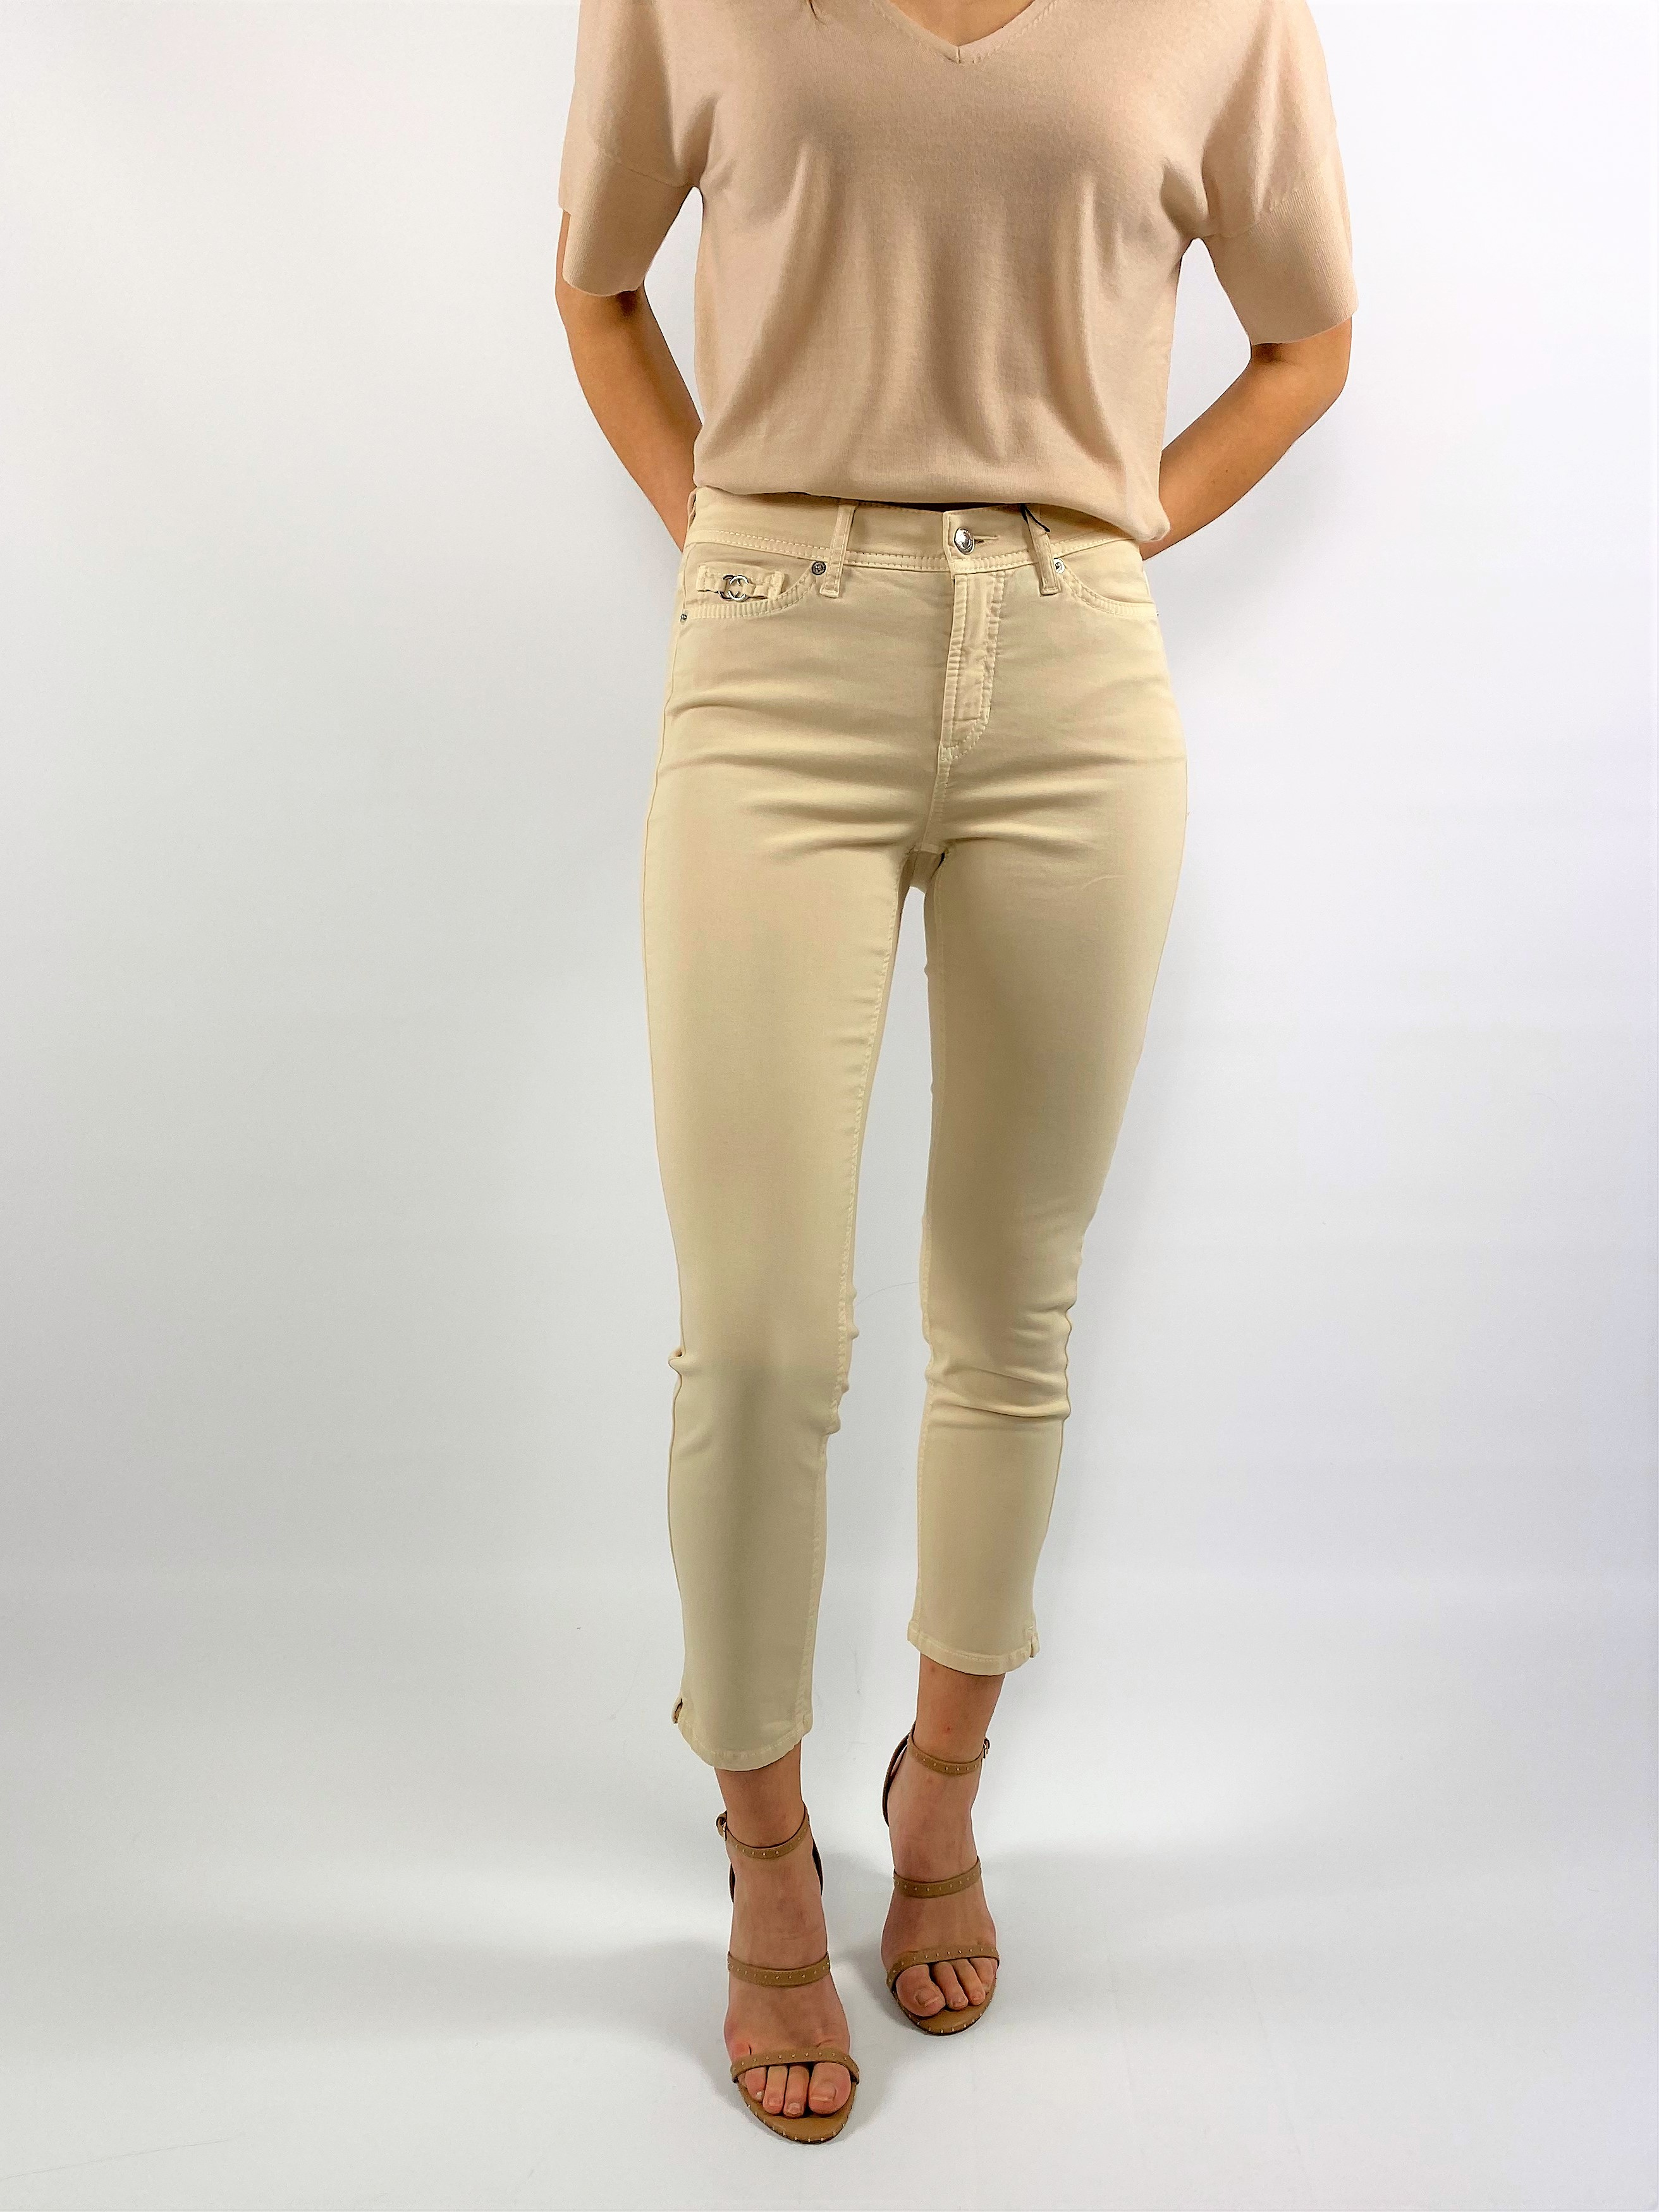 Piper soft touch superstretch - Piper short 7625 - Cambio